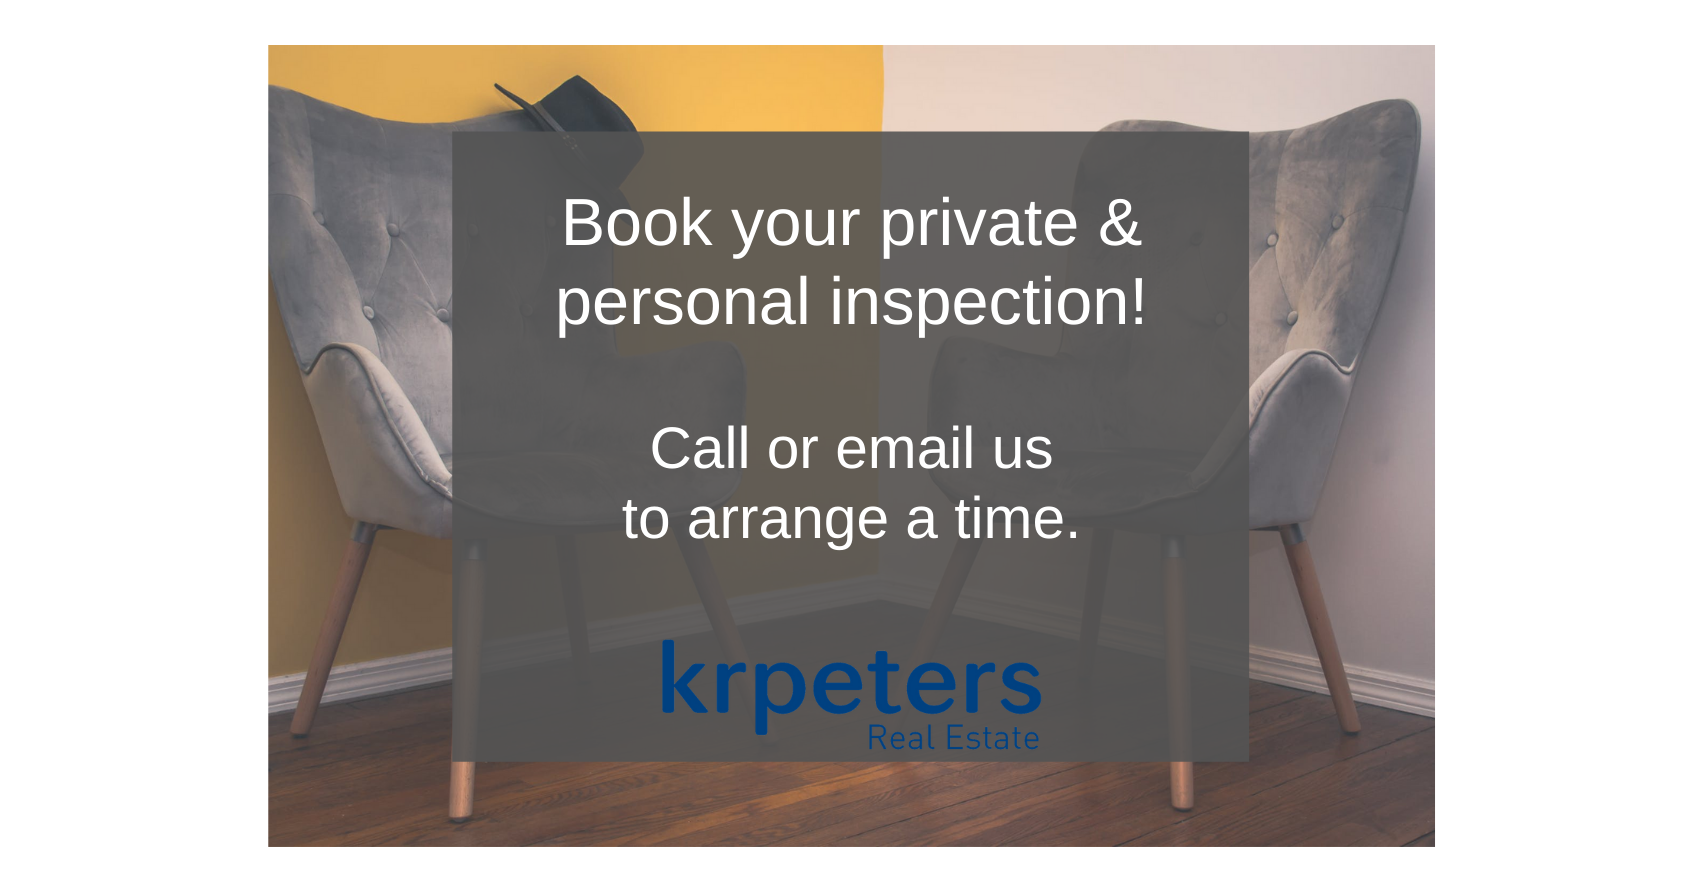 PrivateInspection to all listings